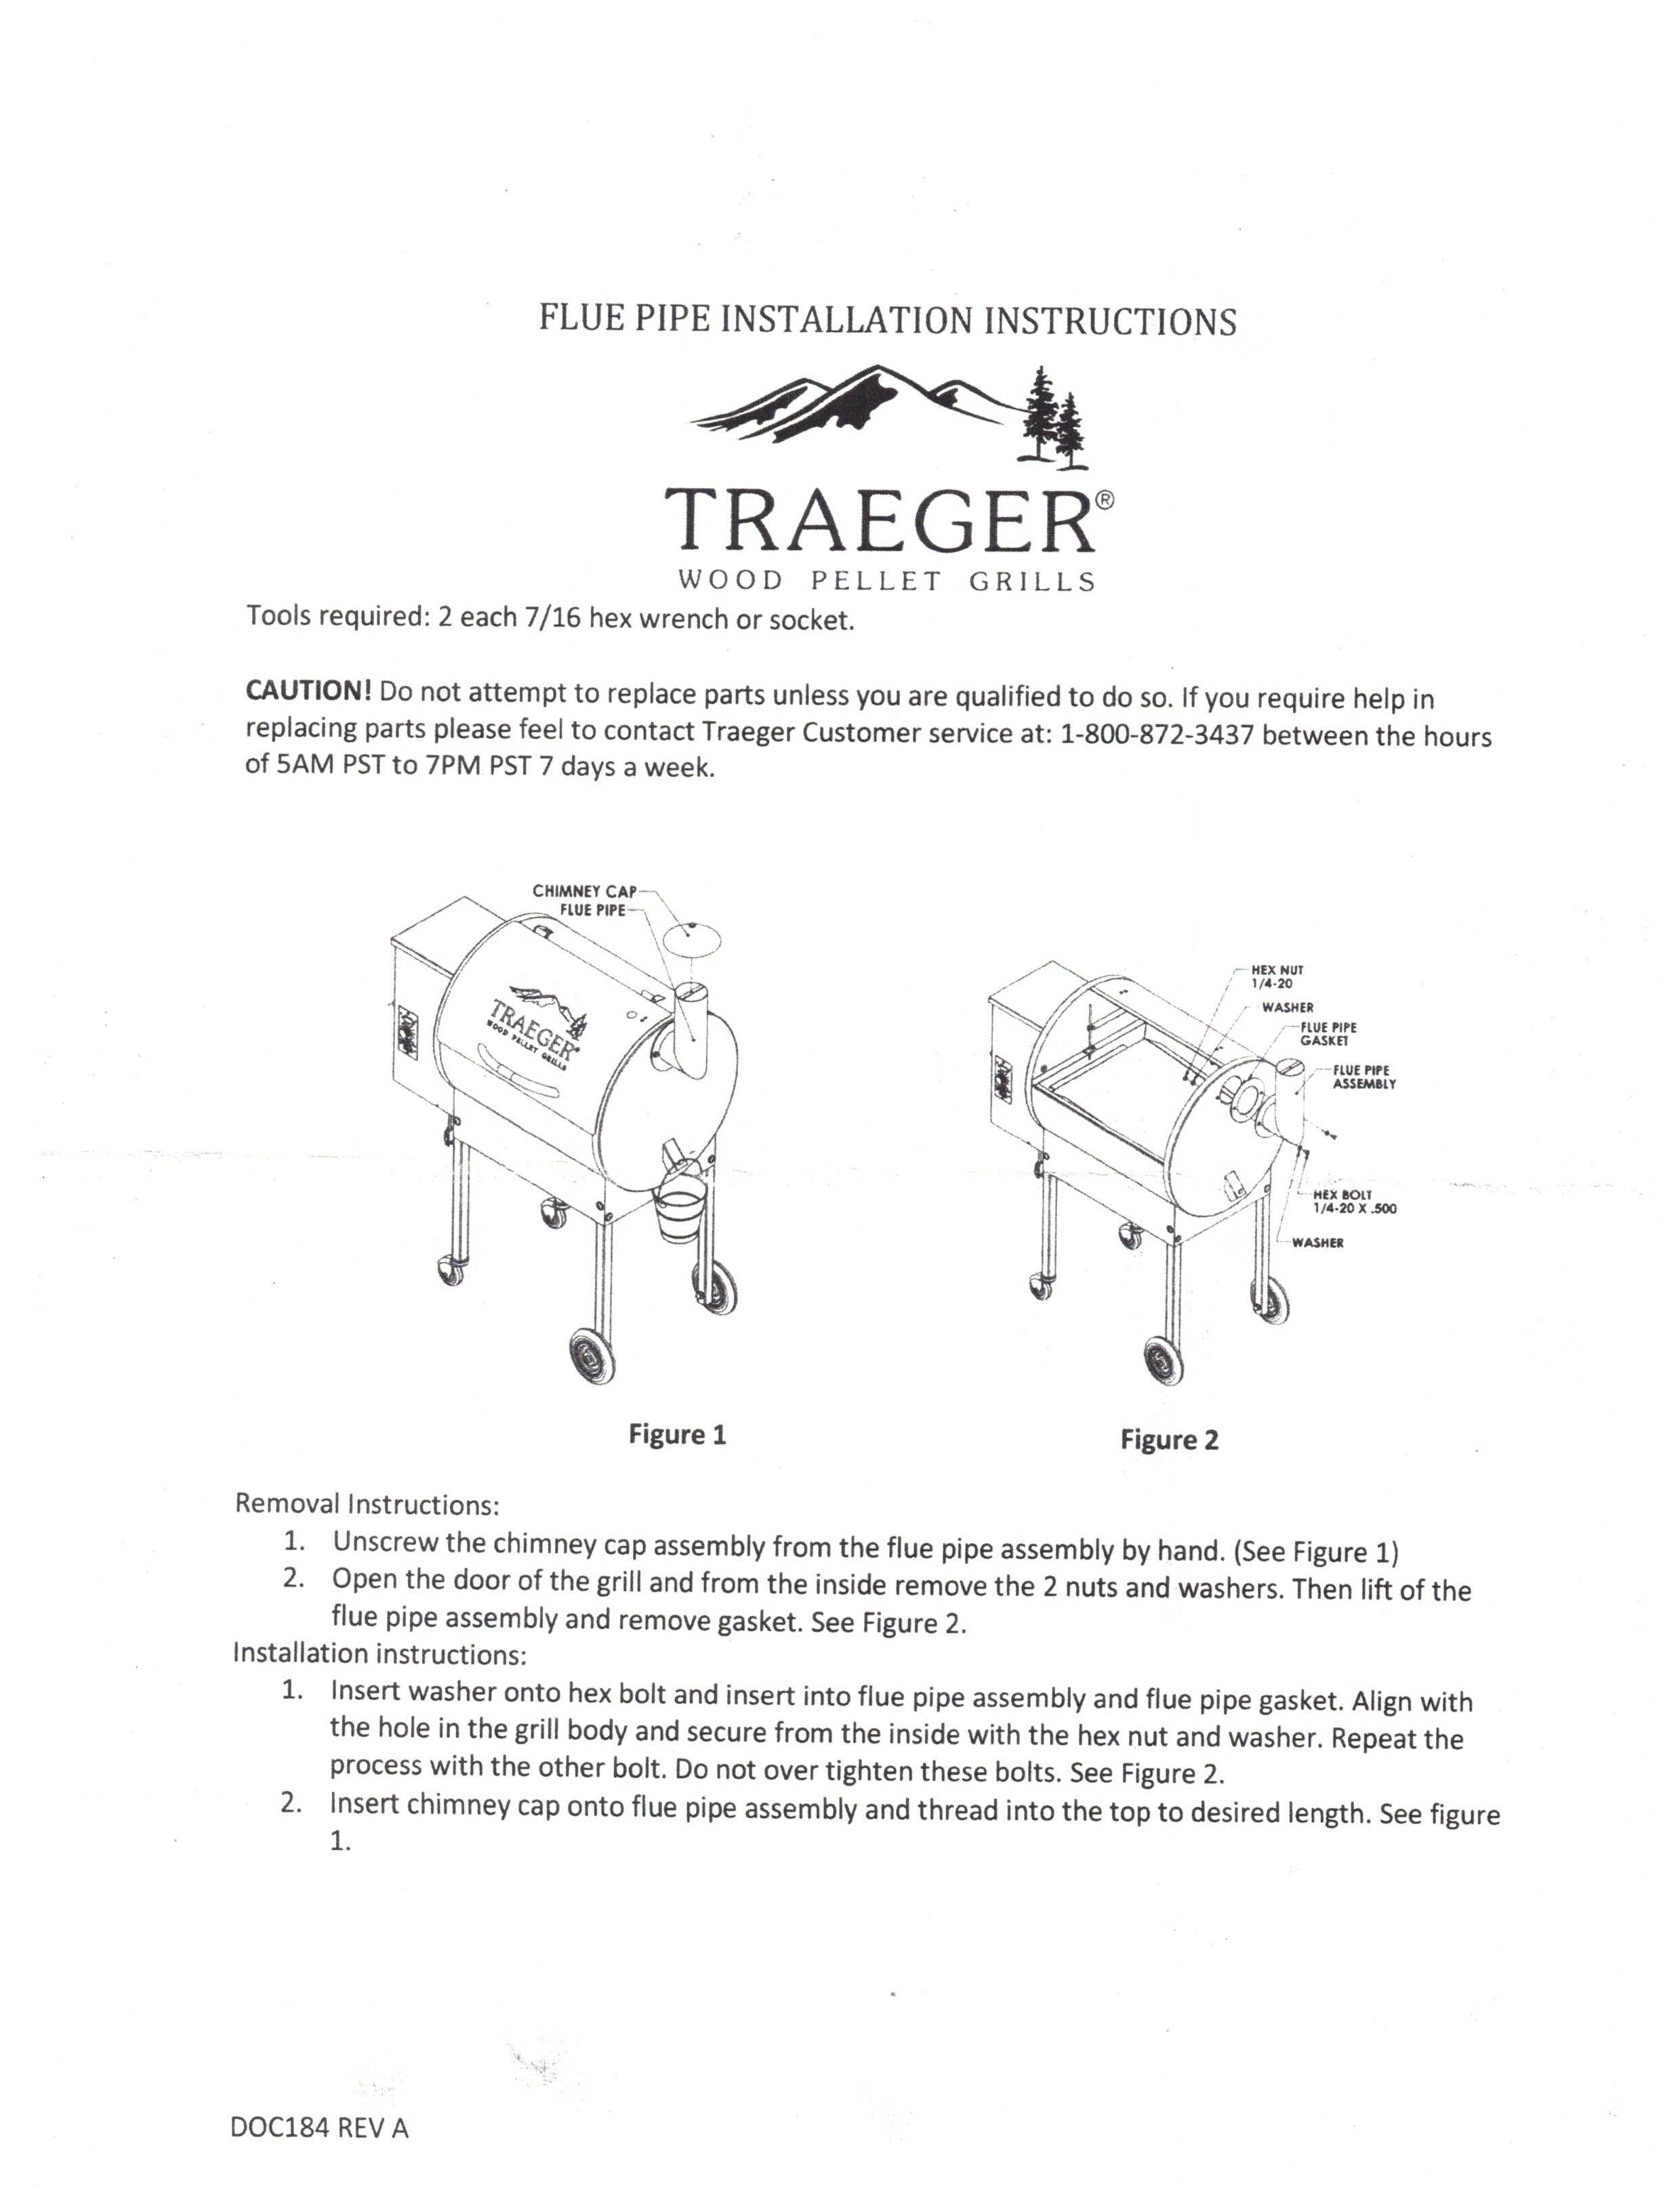 Installation Instructions for FAB309